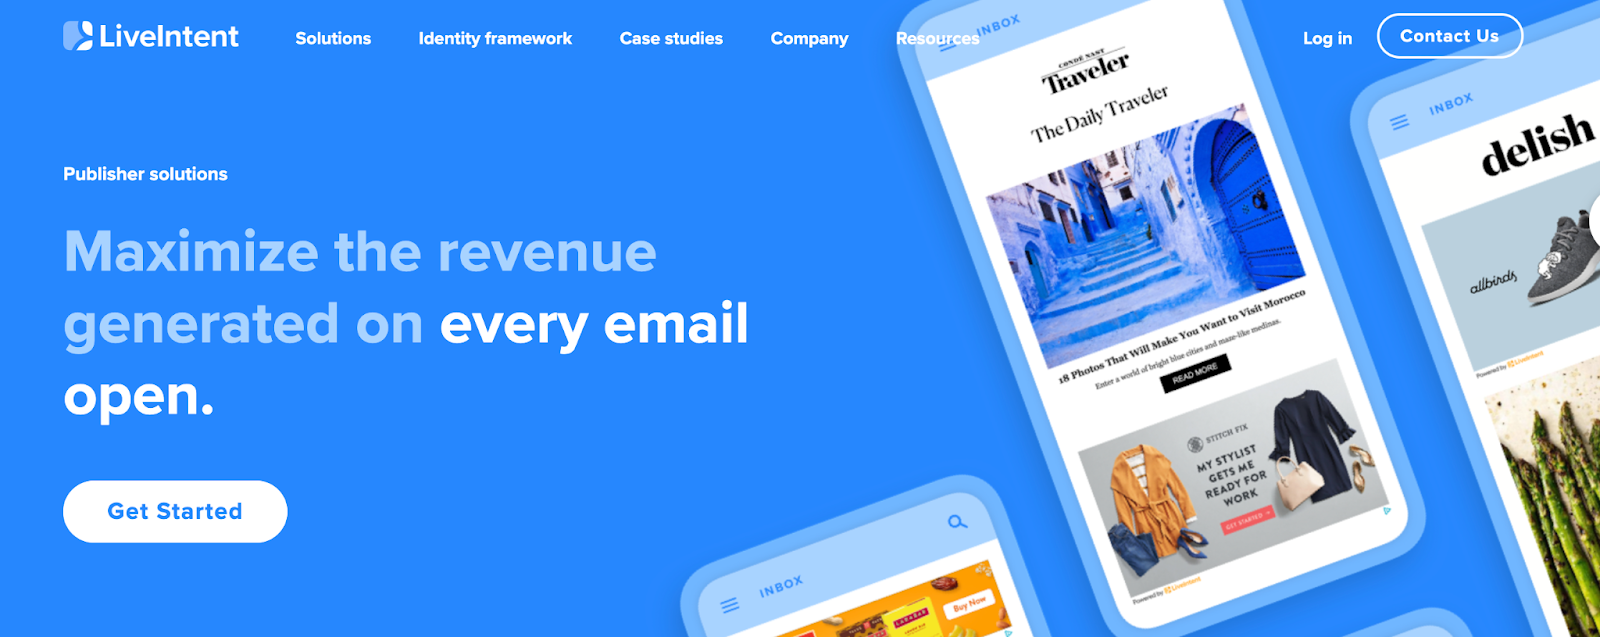 Live Intent Homepage